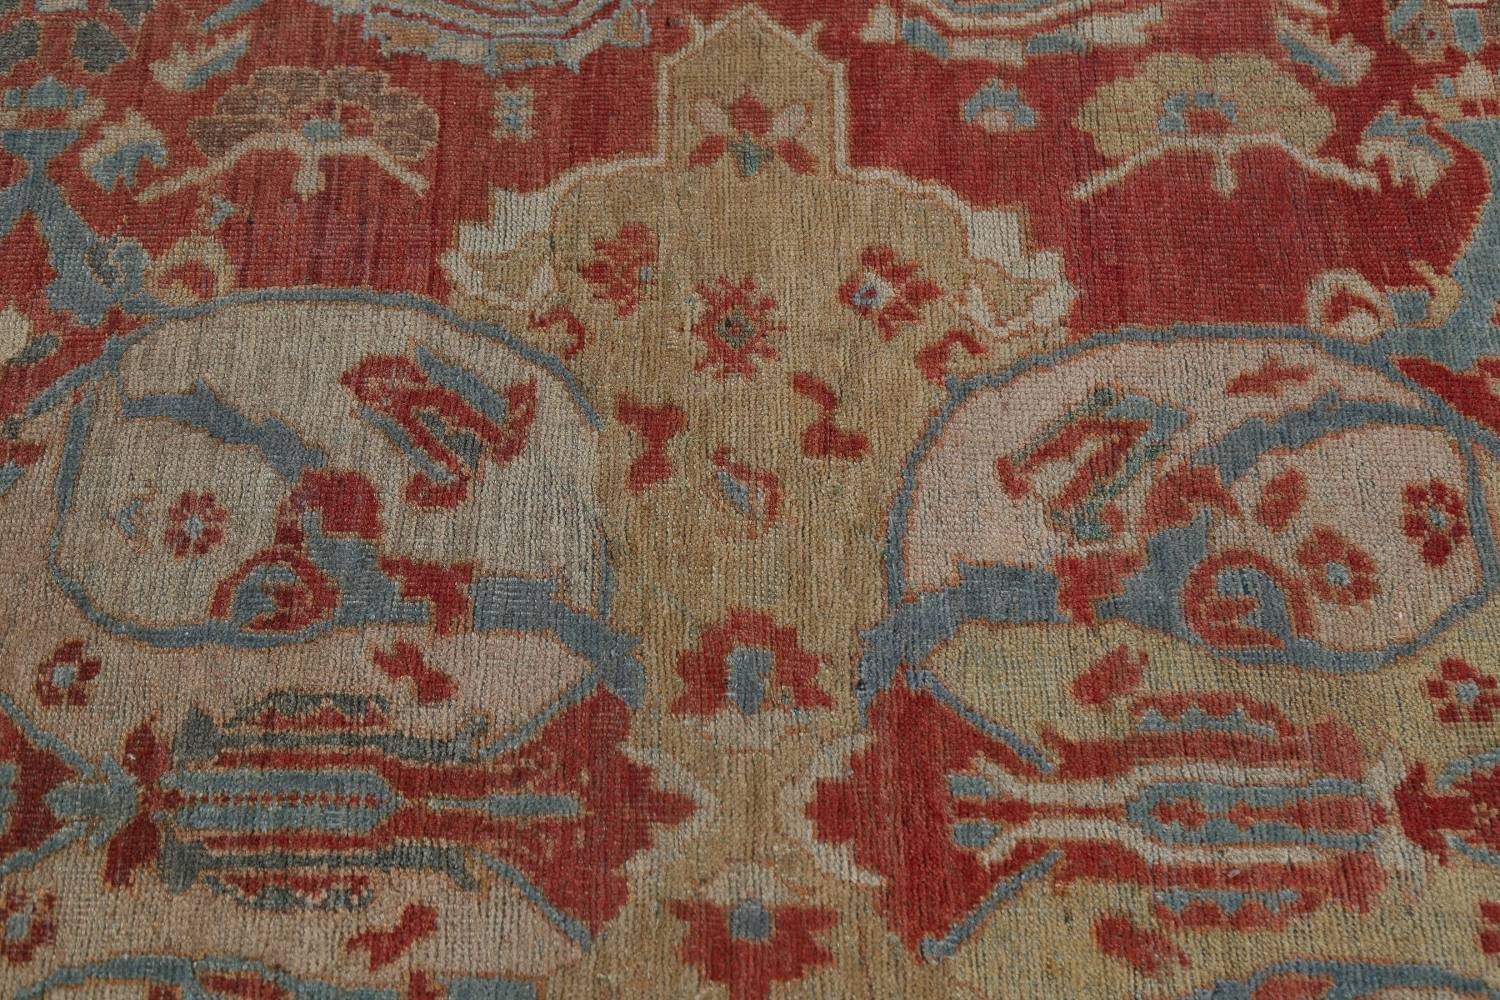 Palace Size Pre-1900 Antique Sultanabad Persian Rug 14x24 image 13